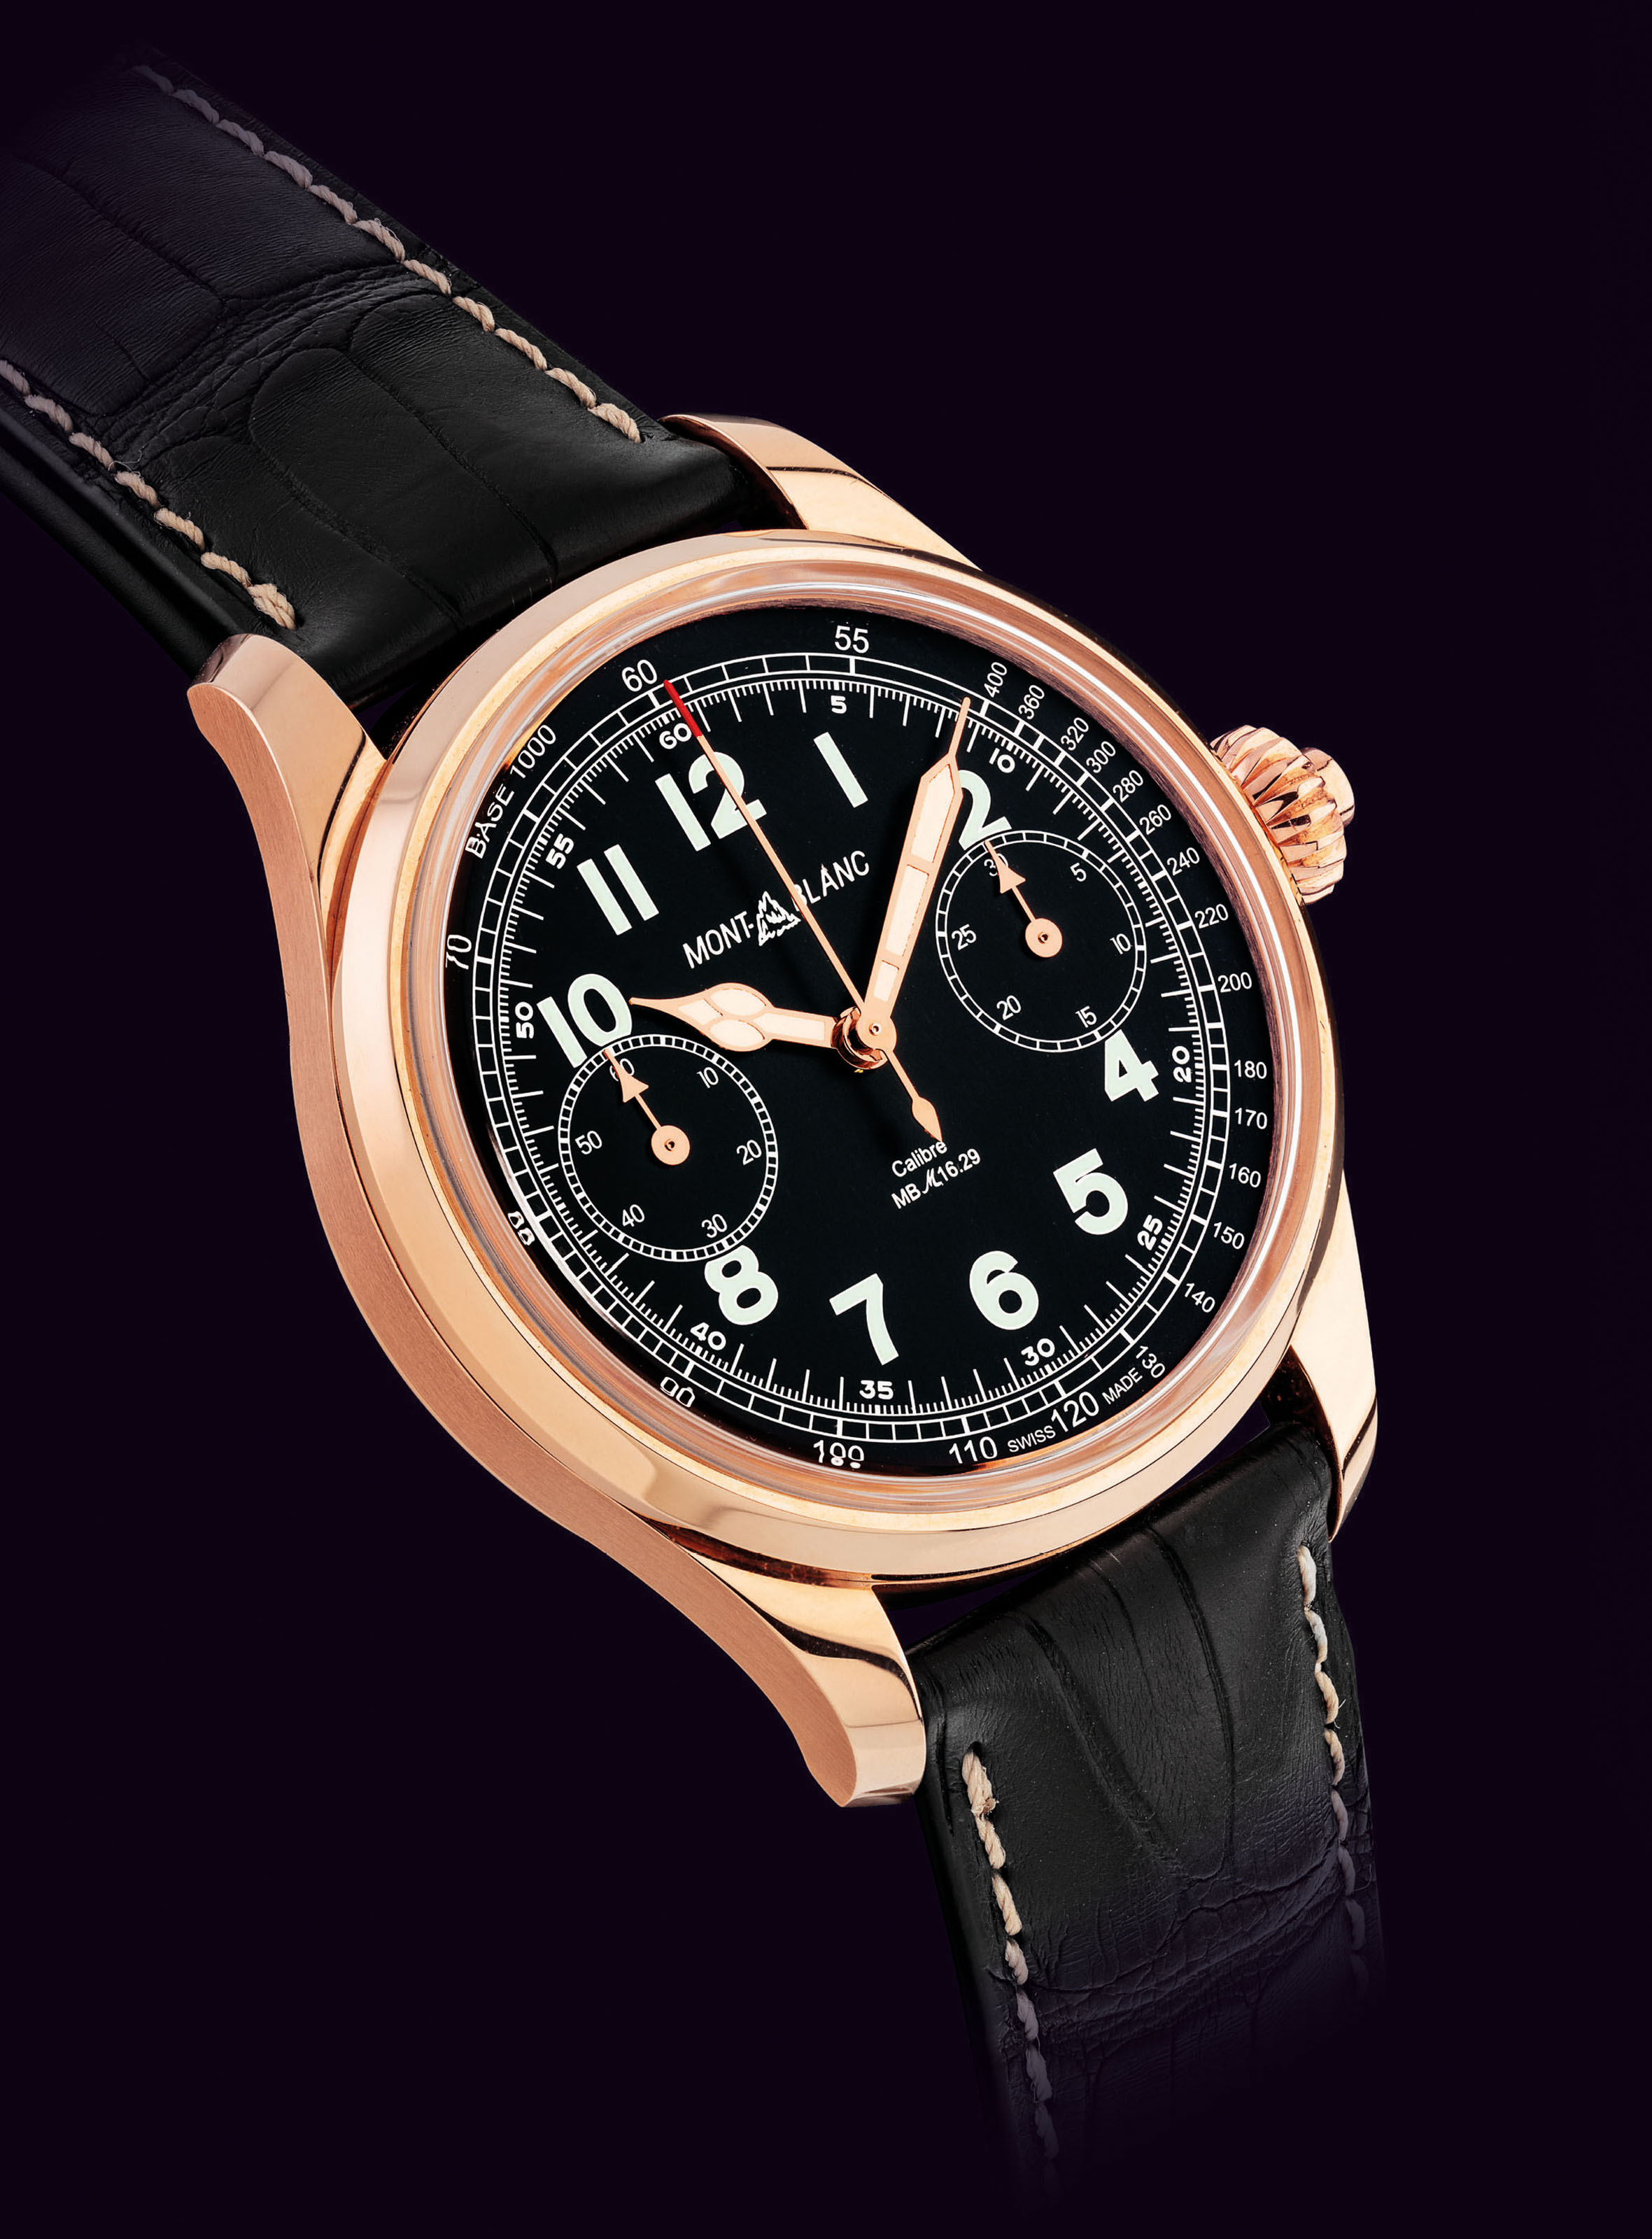 MONTBLANC. A FINE AND VERY RARE 18K PINK GOLD LIMITED EDITION SINGLE-BUTTON CHRONOGRAPH WRISTWATCH